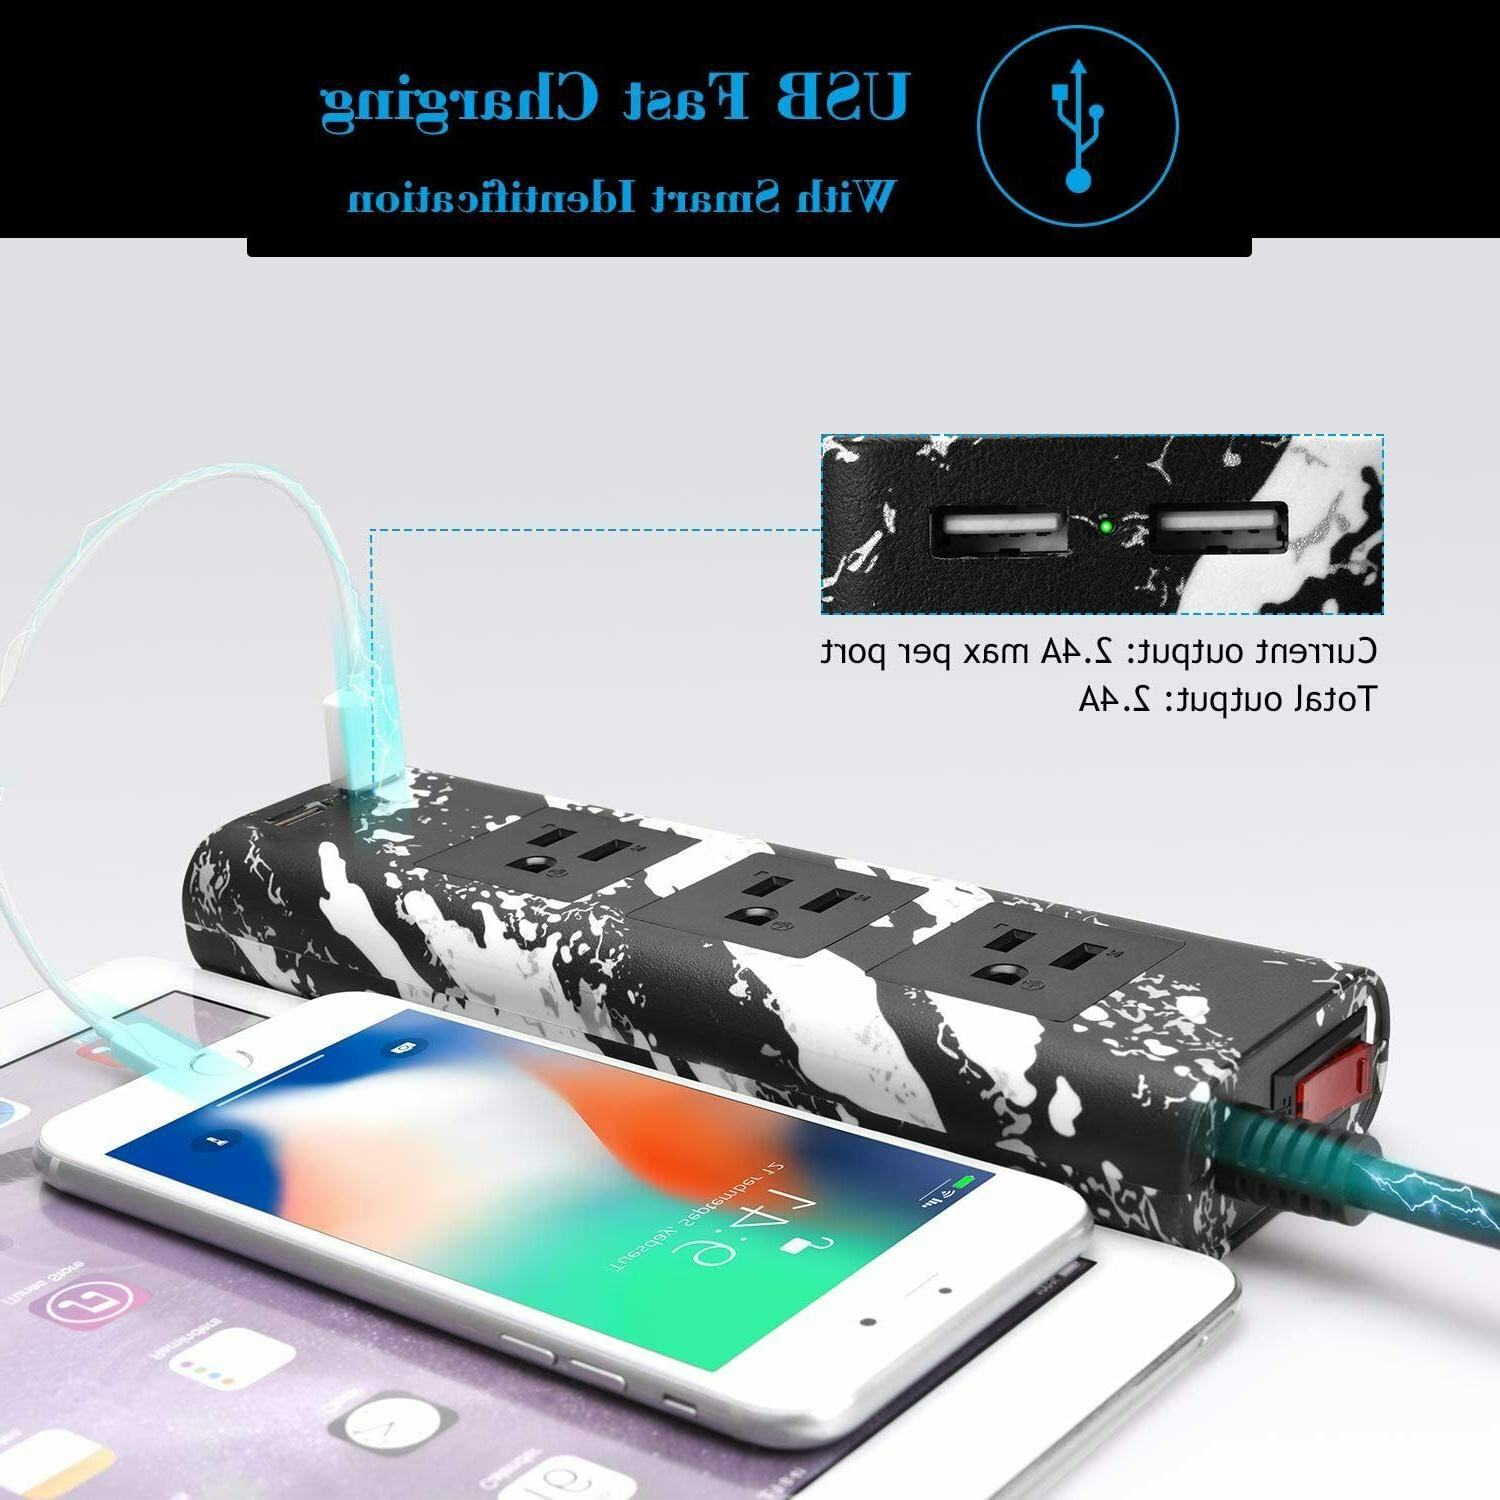 JACKYLED 10ft Power Strip Electrical Power Outlet